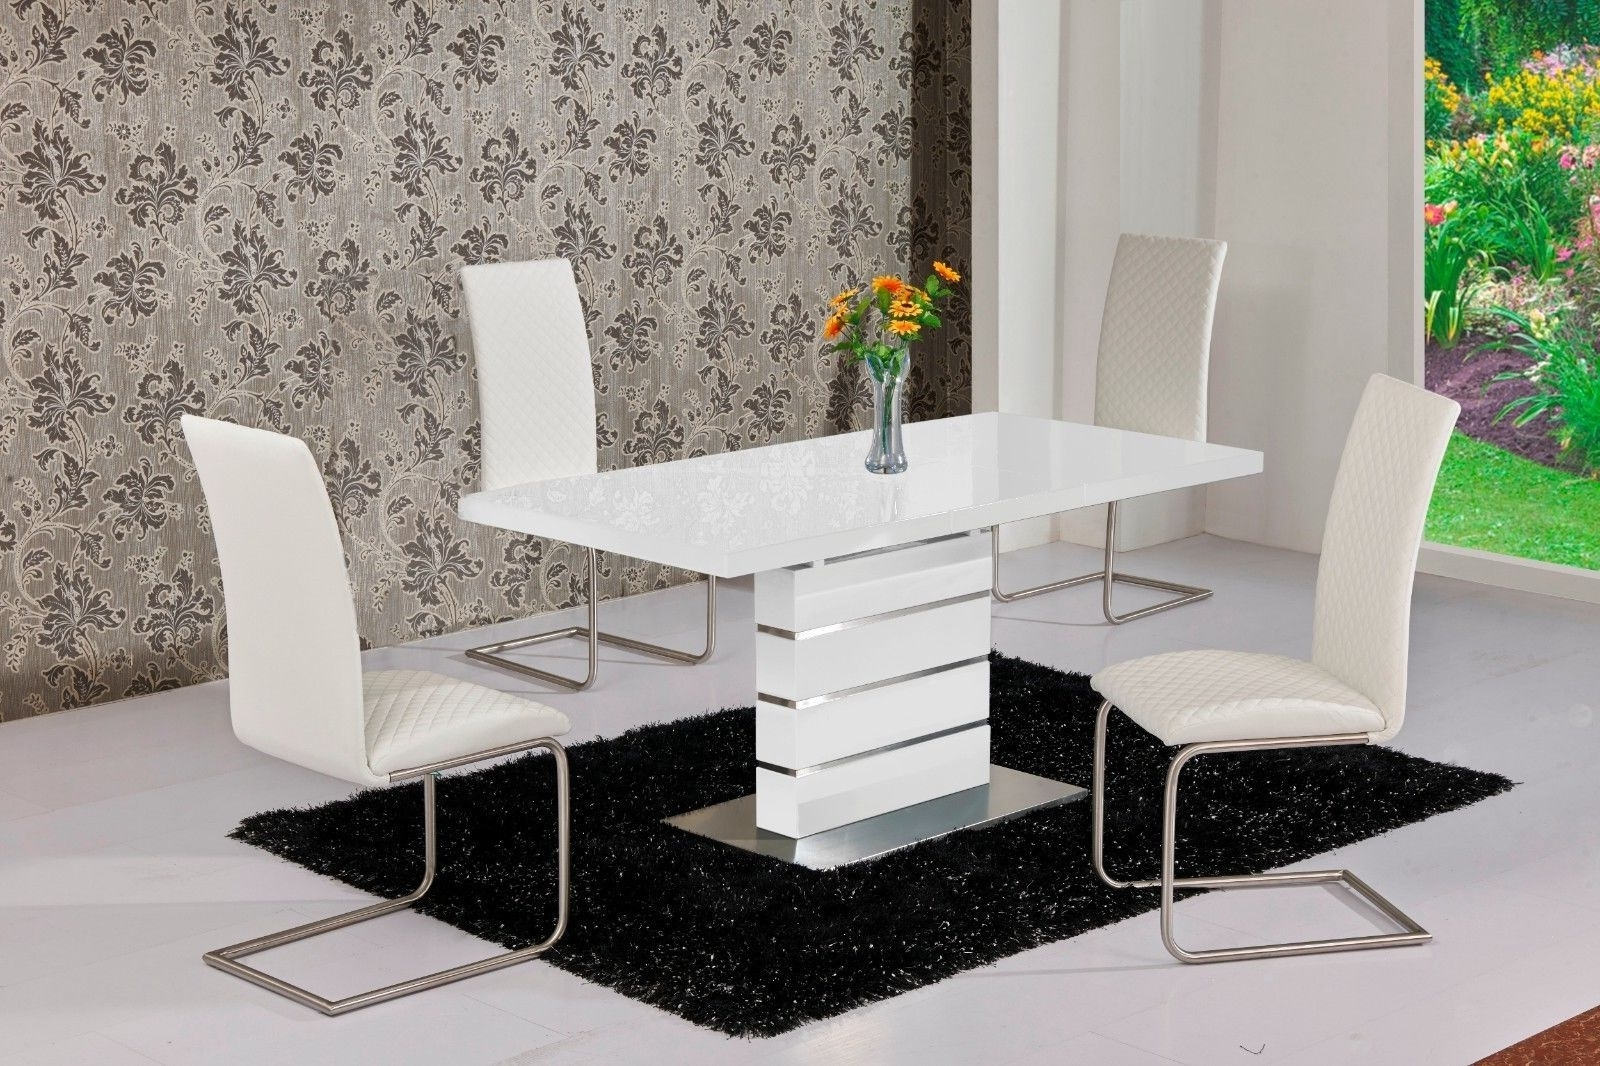 White Gloss Dining Tables And 6 Chairs Within Most Recent Mace High Gloss Extending 120 160 Dining Table & Chair Set – White (View 6 of 25)